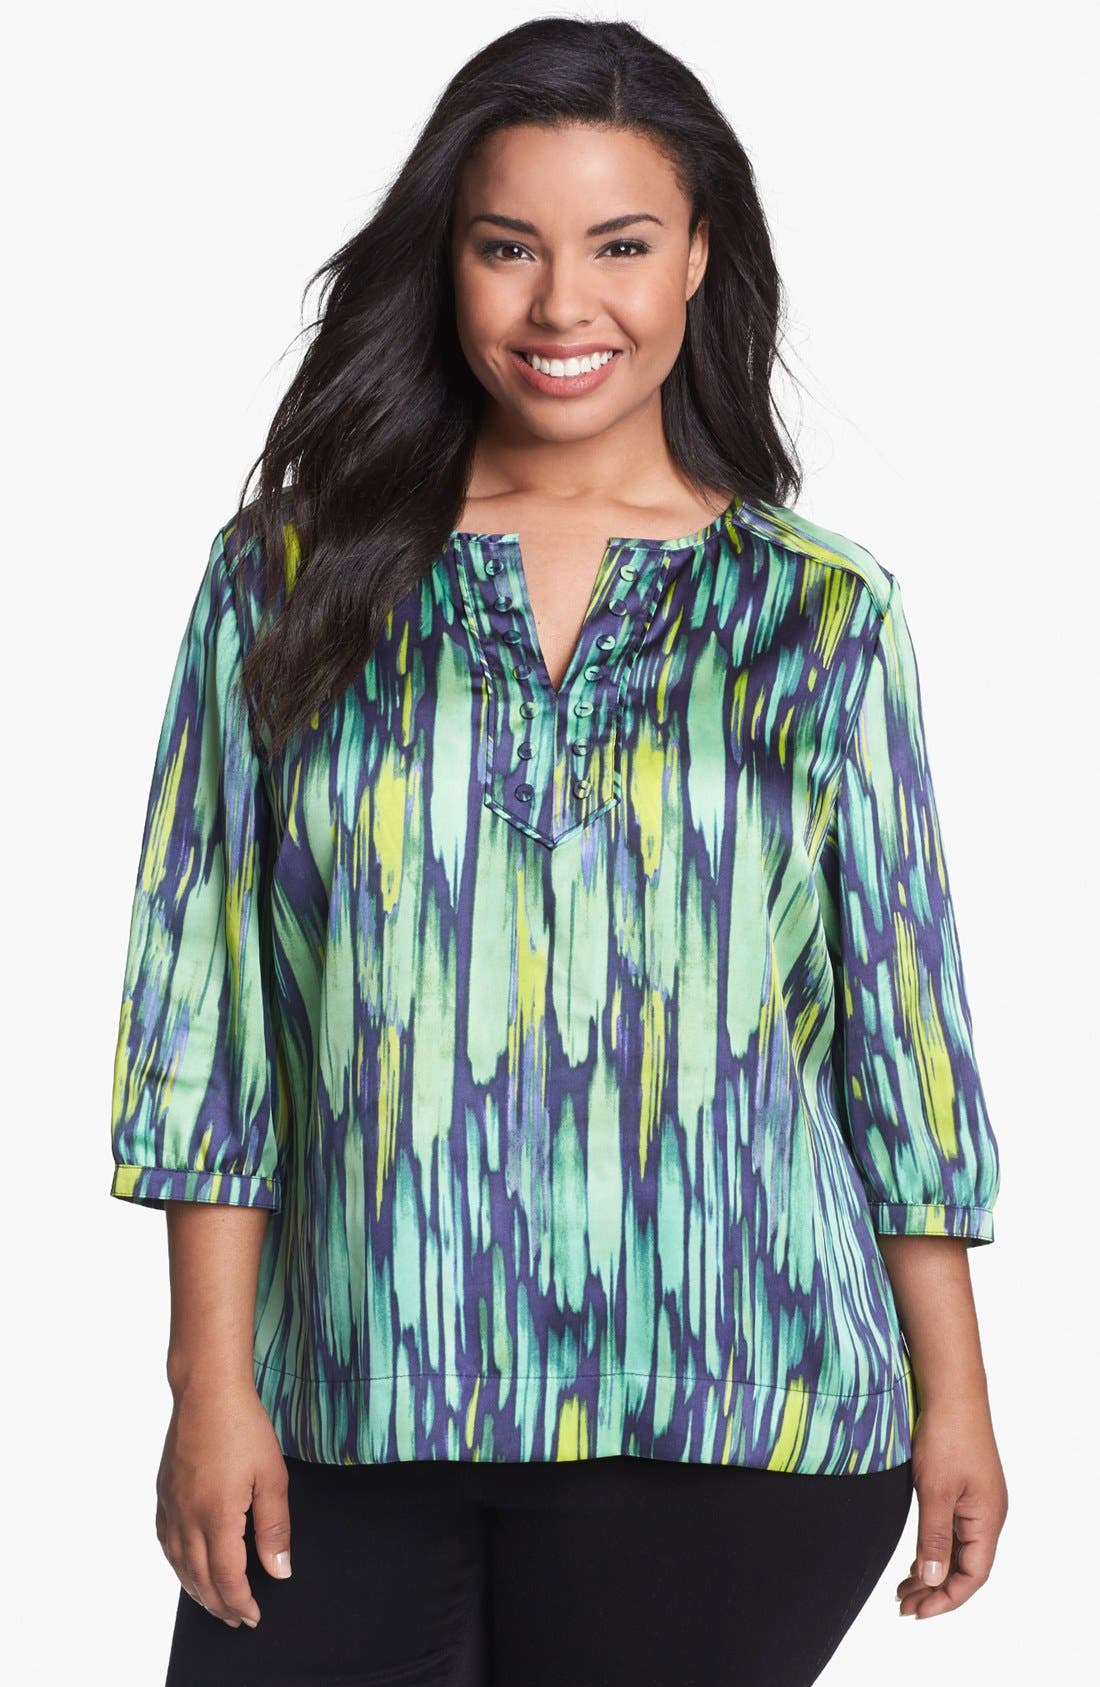 Alternate Image 1 Selected - Sejour Print Satin Top (Plus Size)